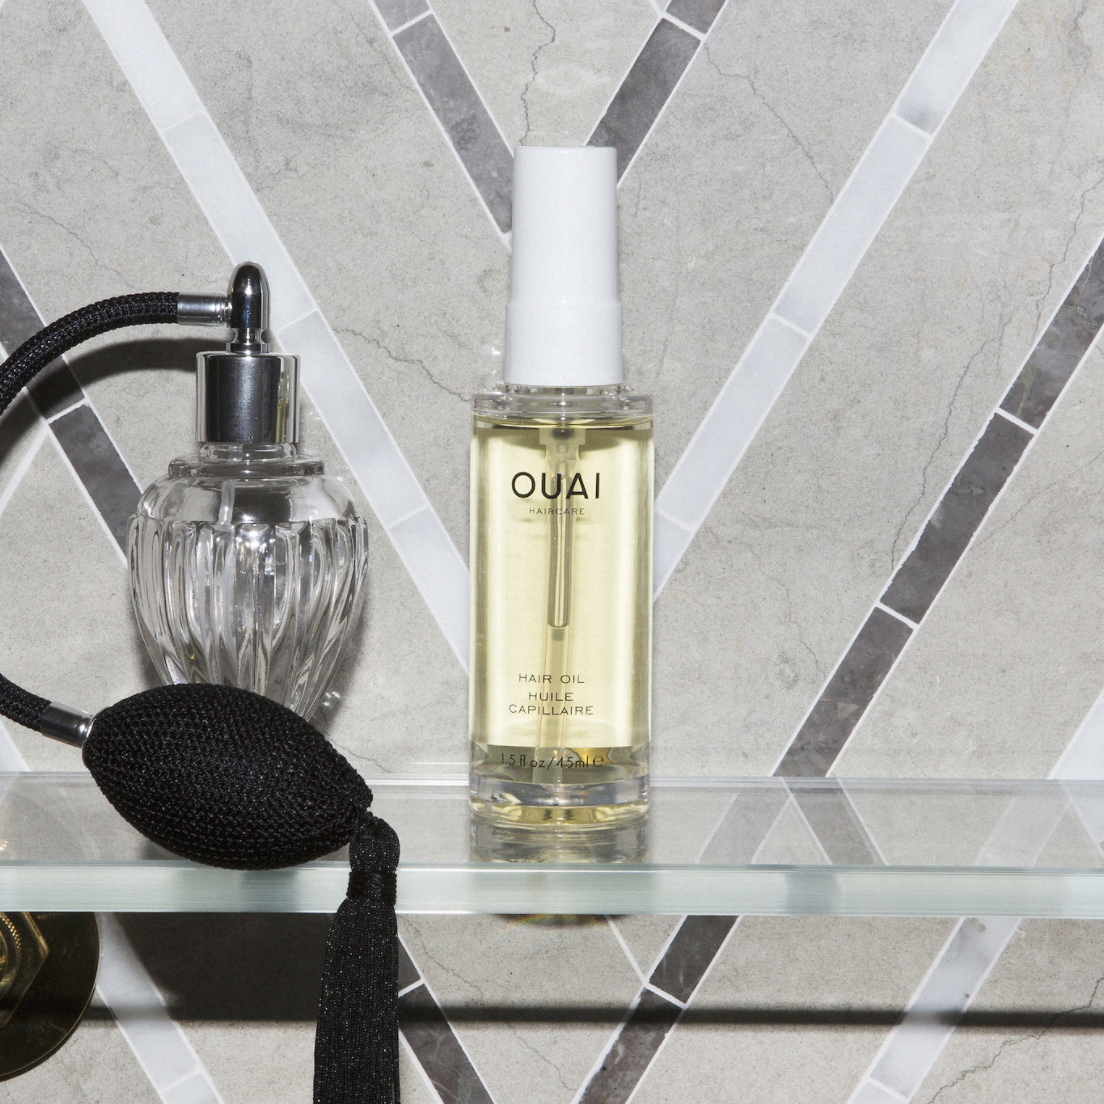 the bottle of hair oil next to a perfume bottle on a countertop